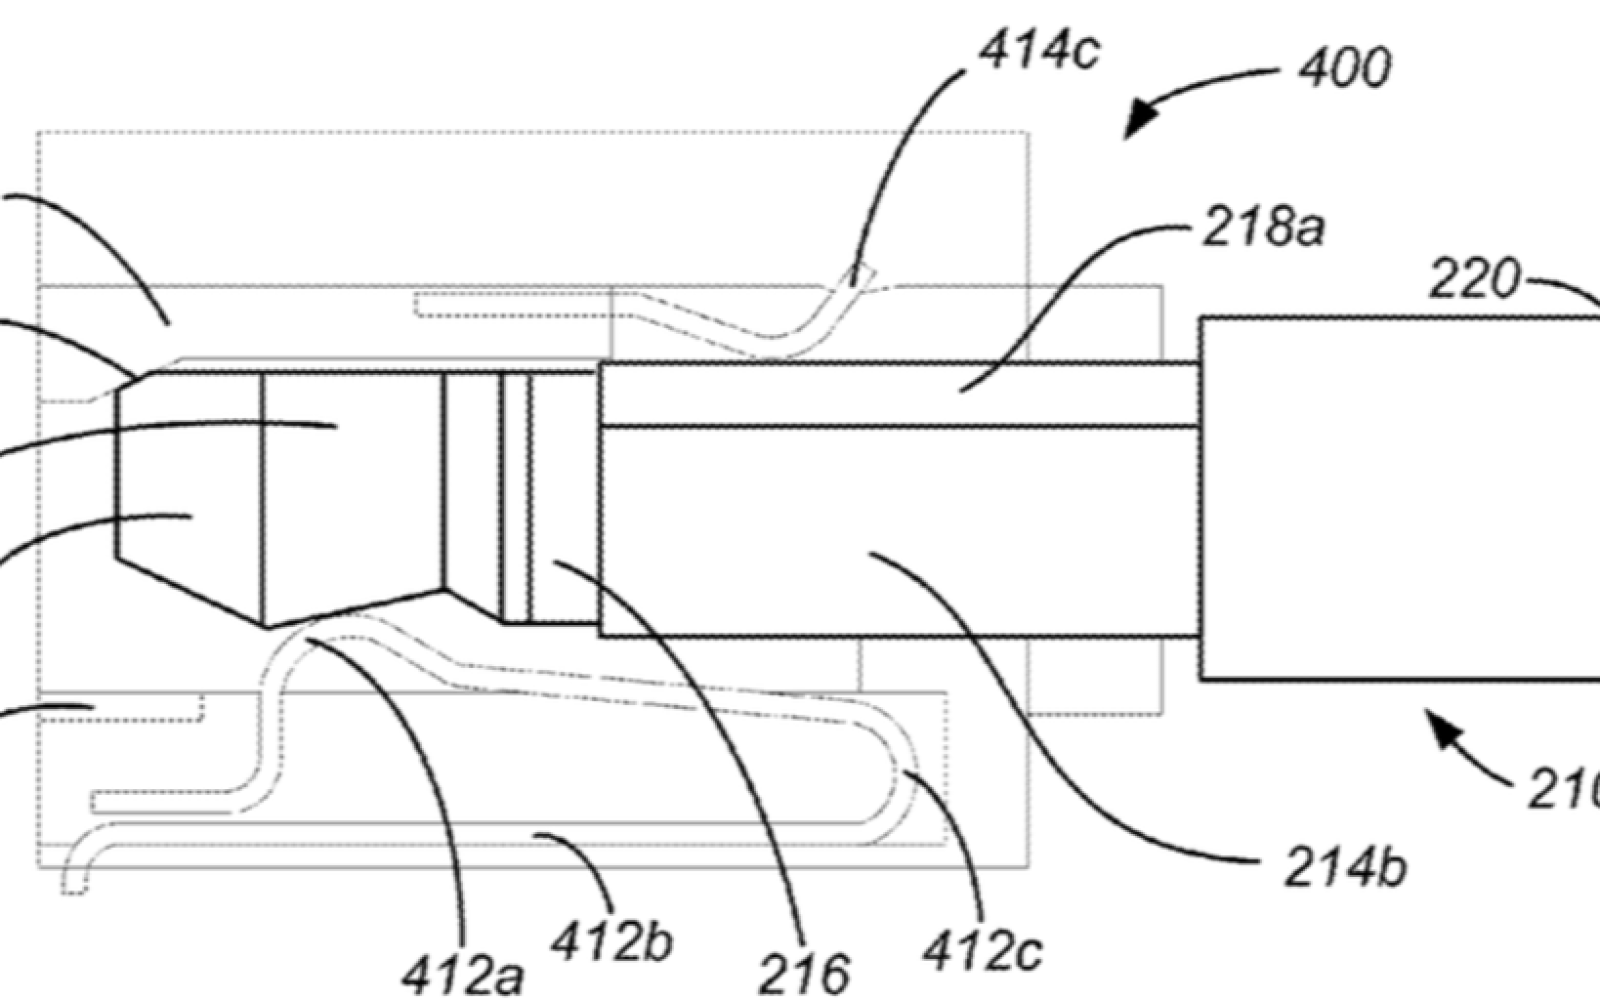 Apple patents half-height 3.5mm headphone jack, ready for slimmer future iPhones